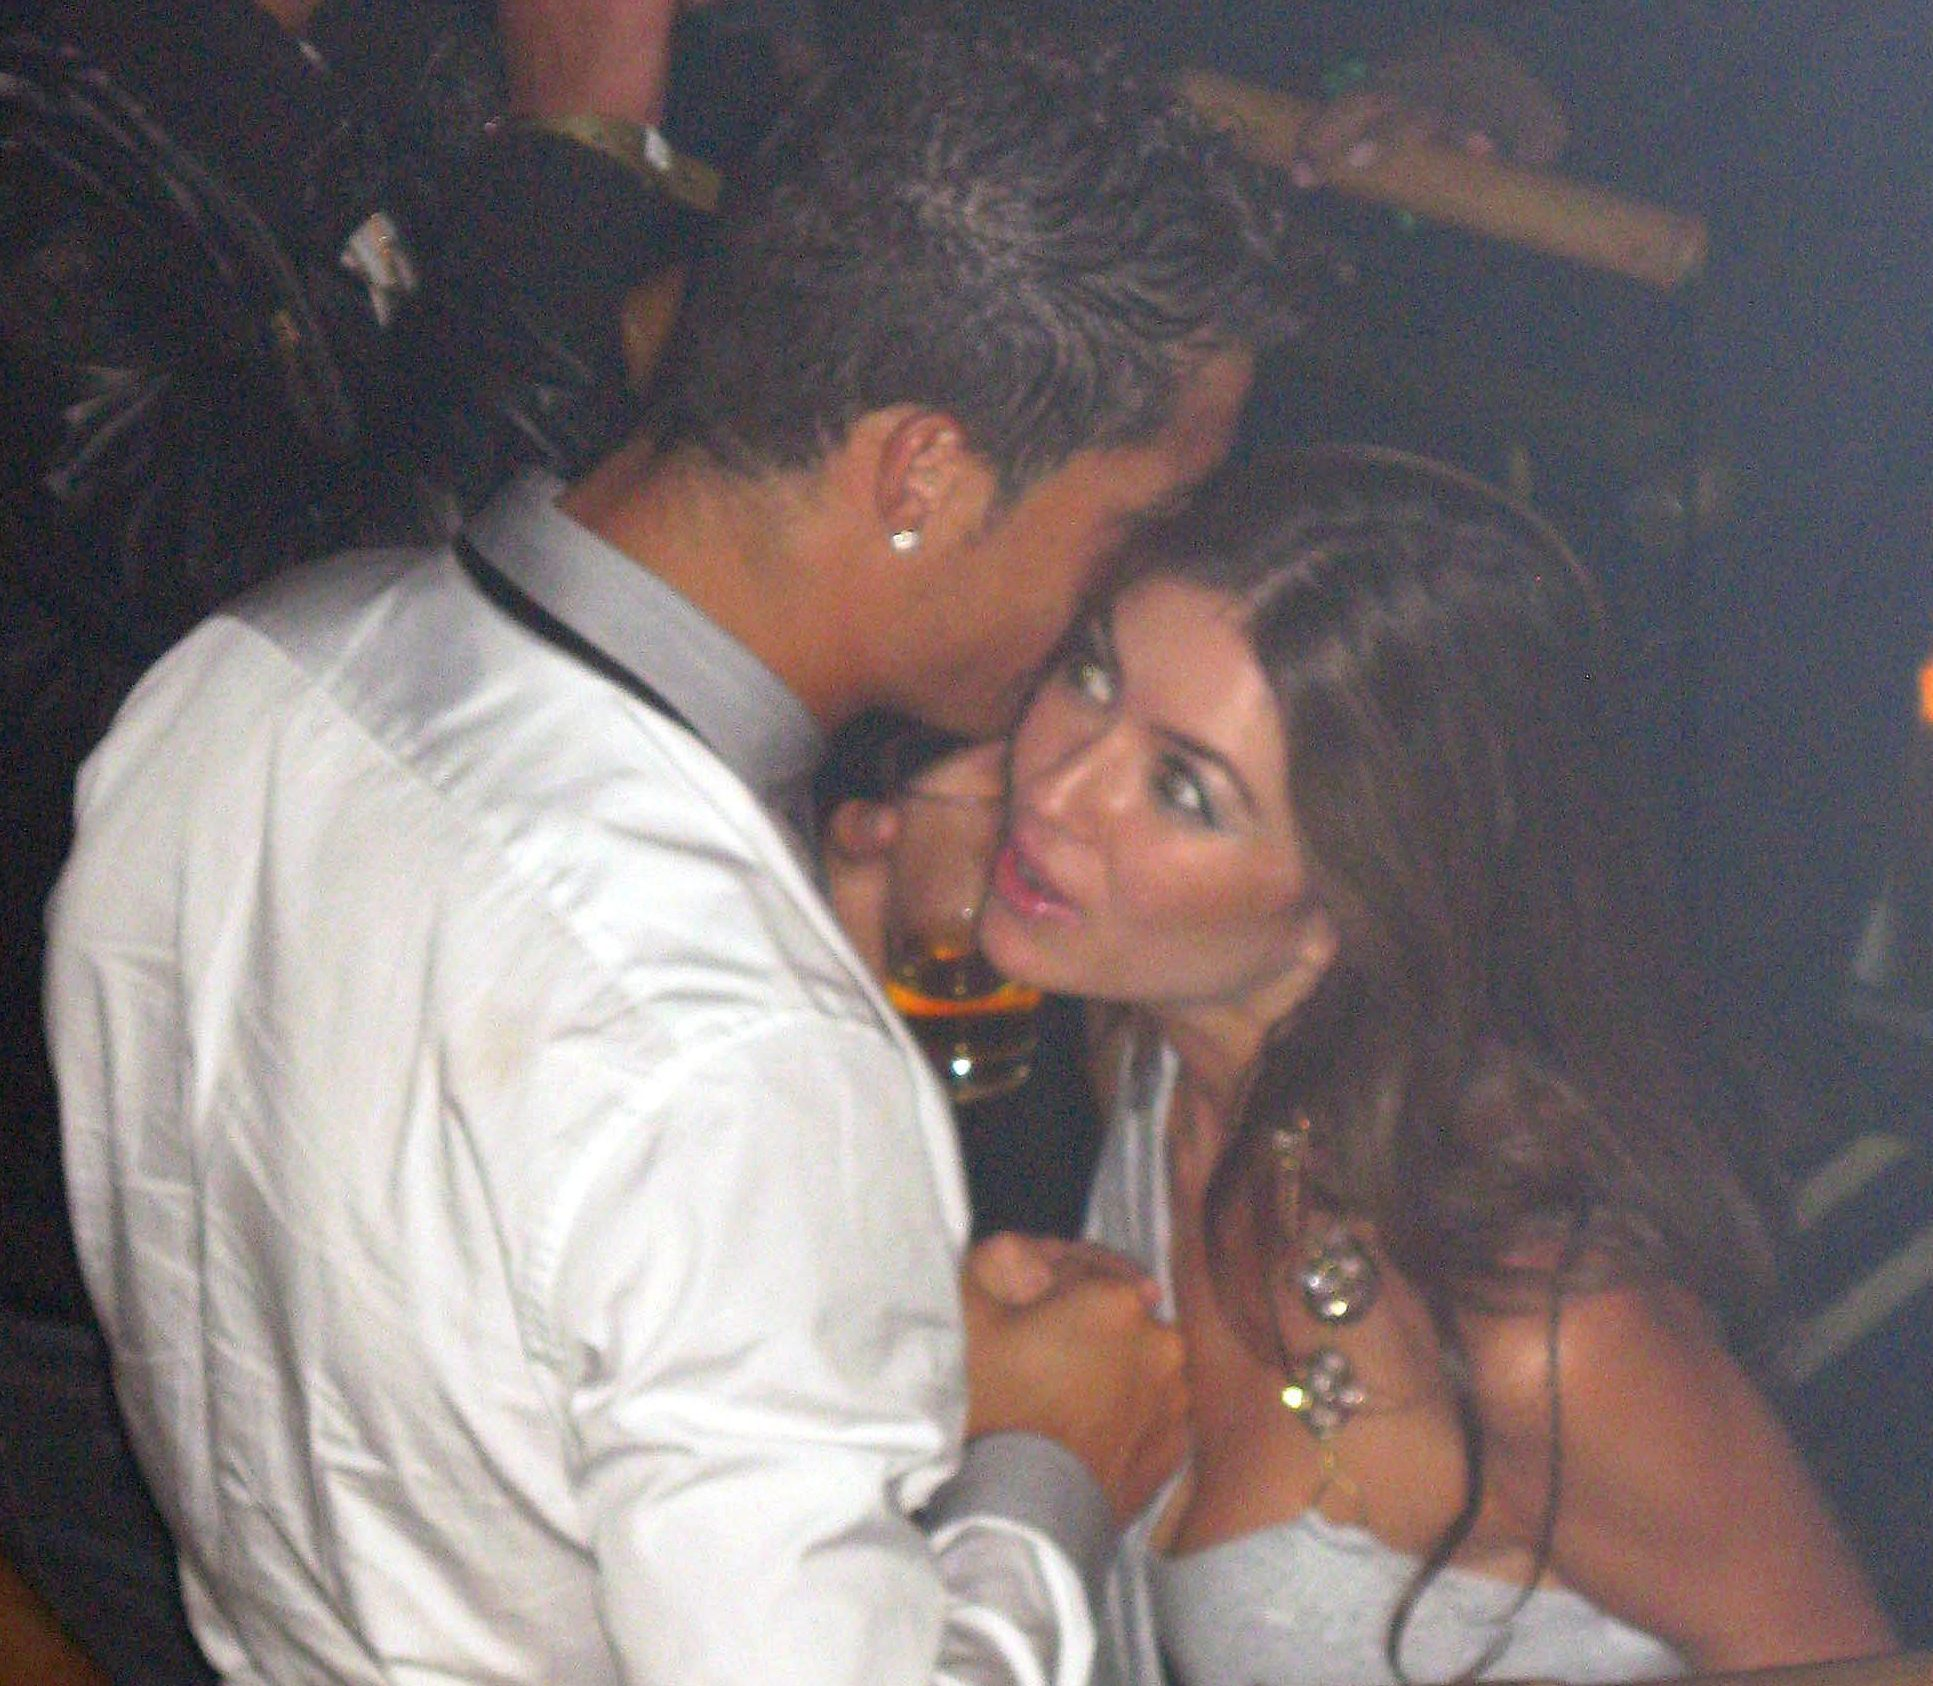 Ronaldo is clearly seen to be on friendly terms with Kathryn Mayorga, who says he later raped her - an accusation strenuously denied by the player